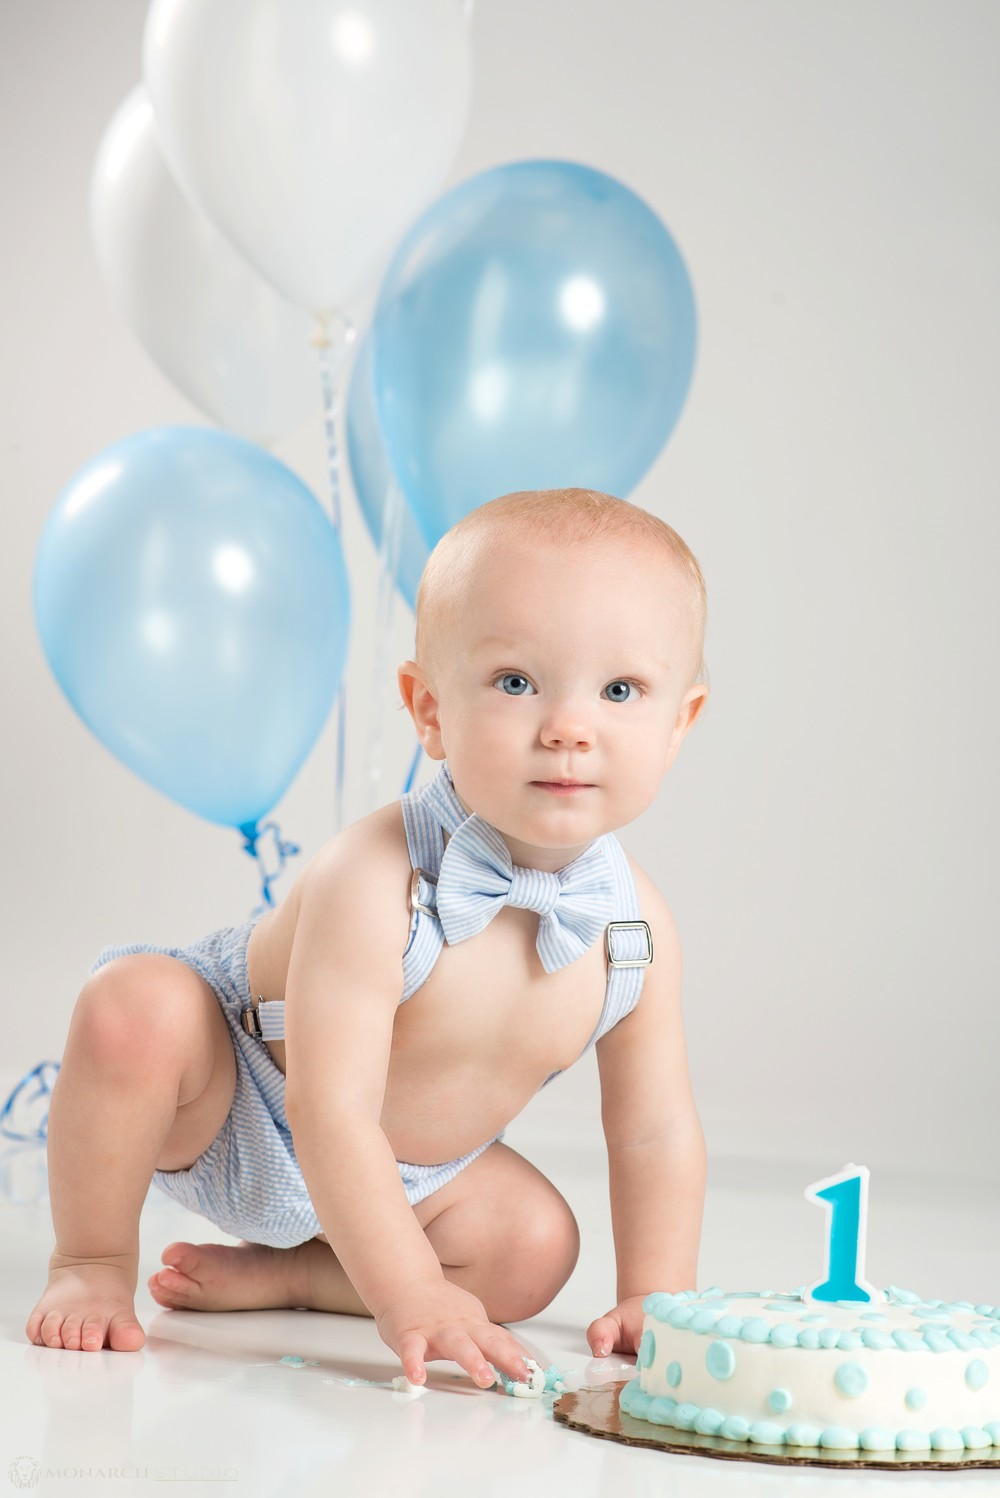 Smash cake portrait sessions have become a very popular way to celebrate 1st birthdays.